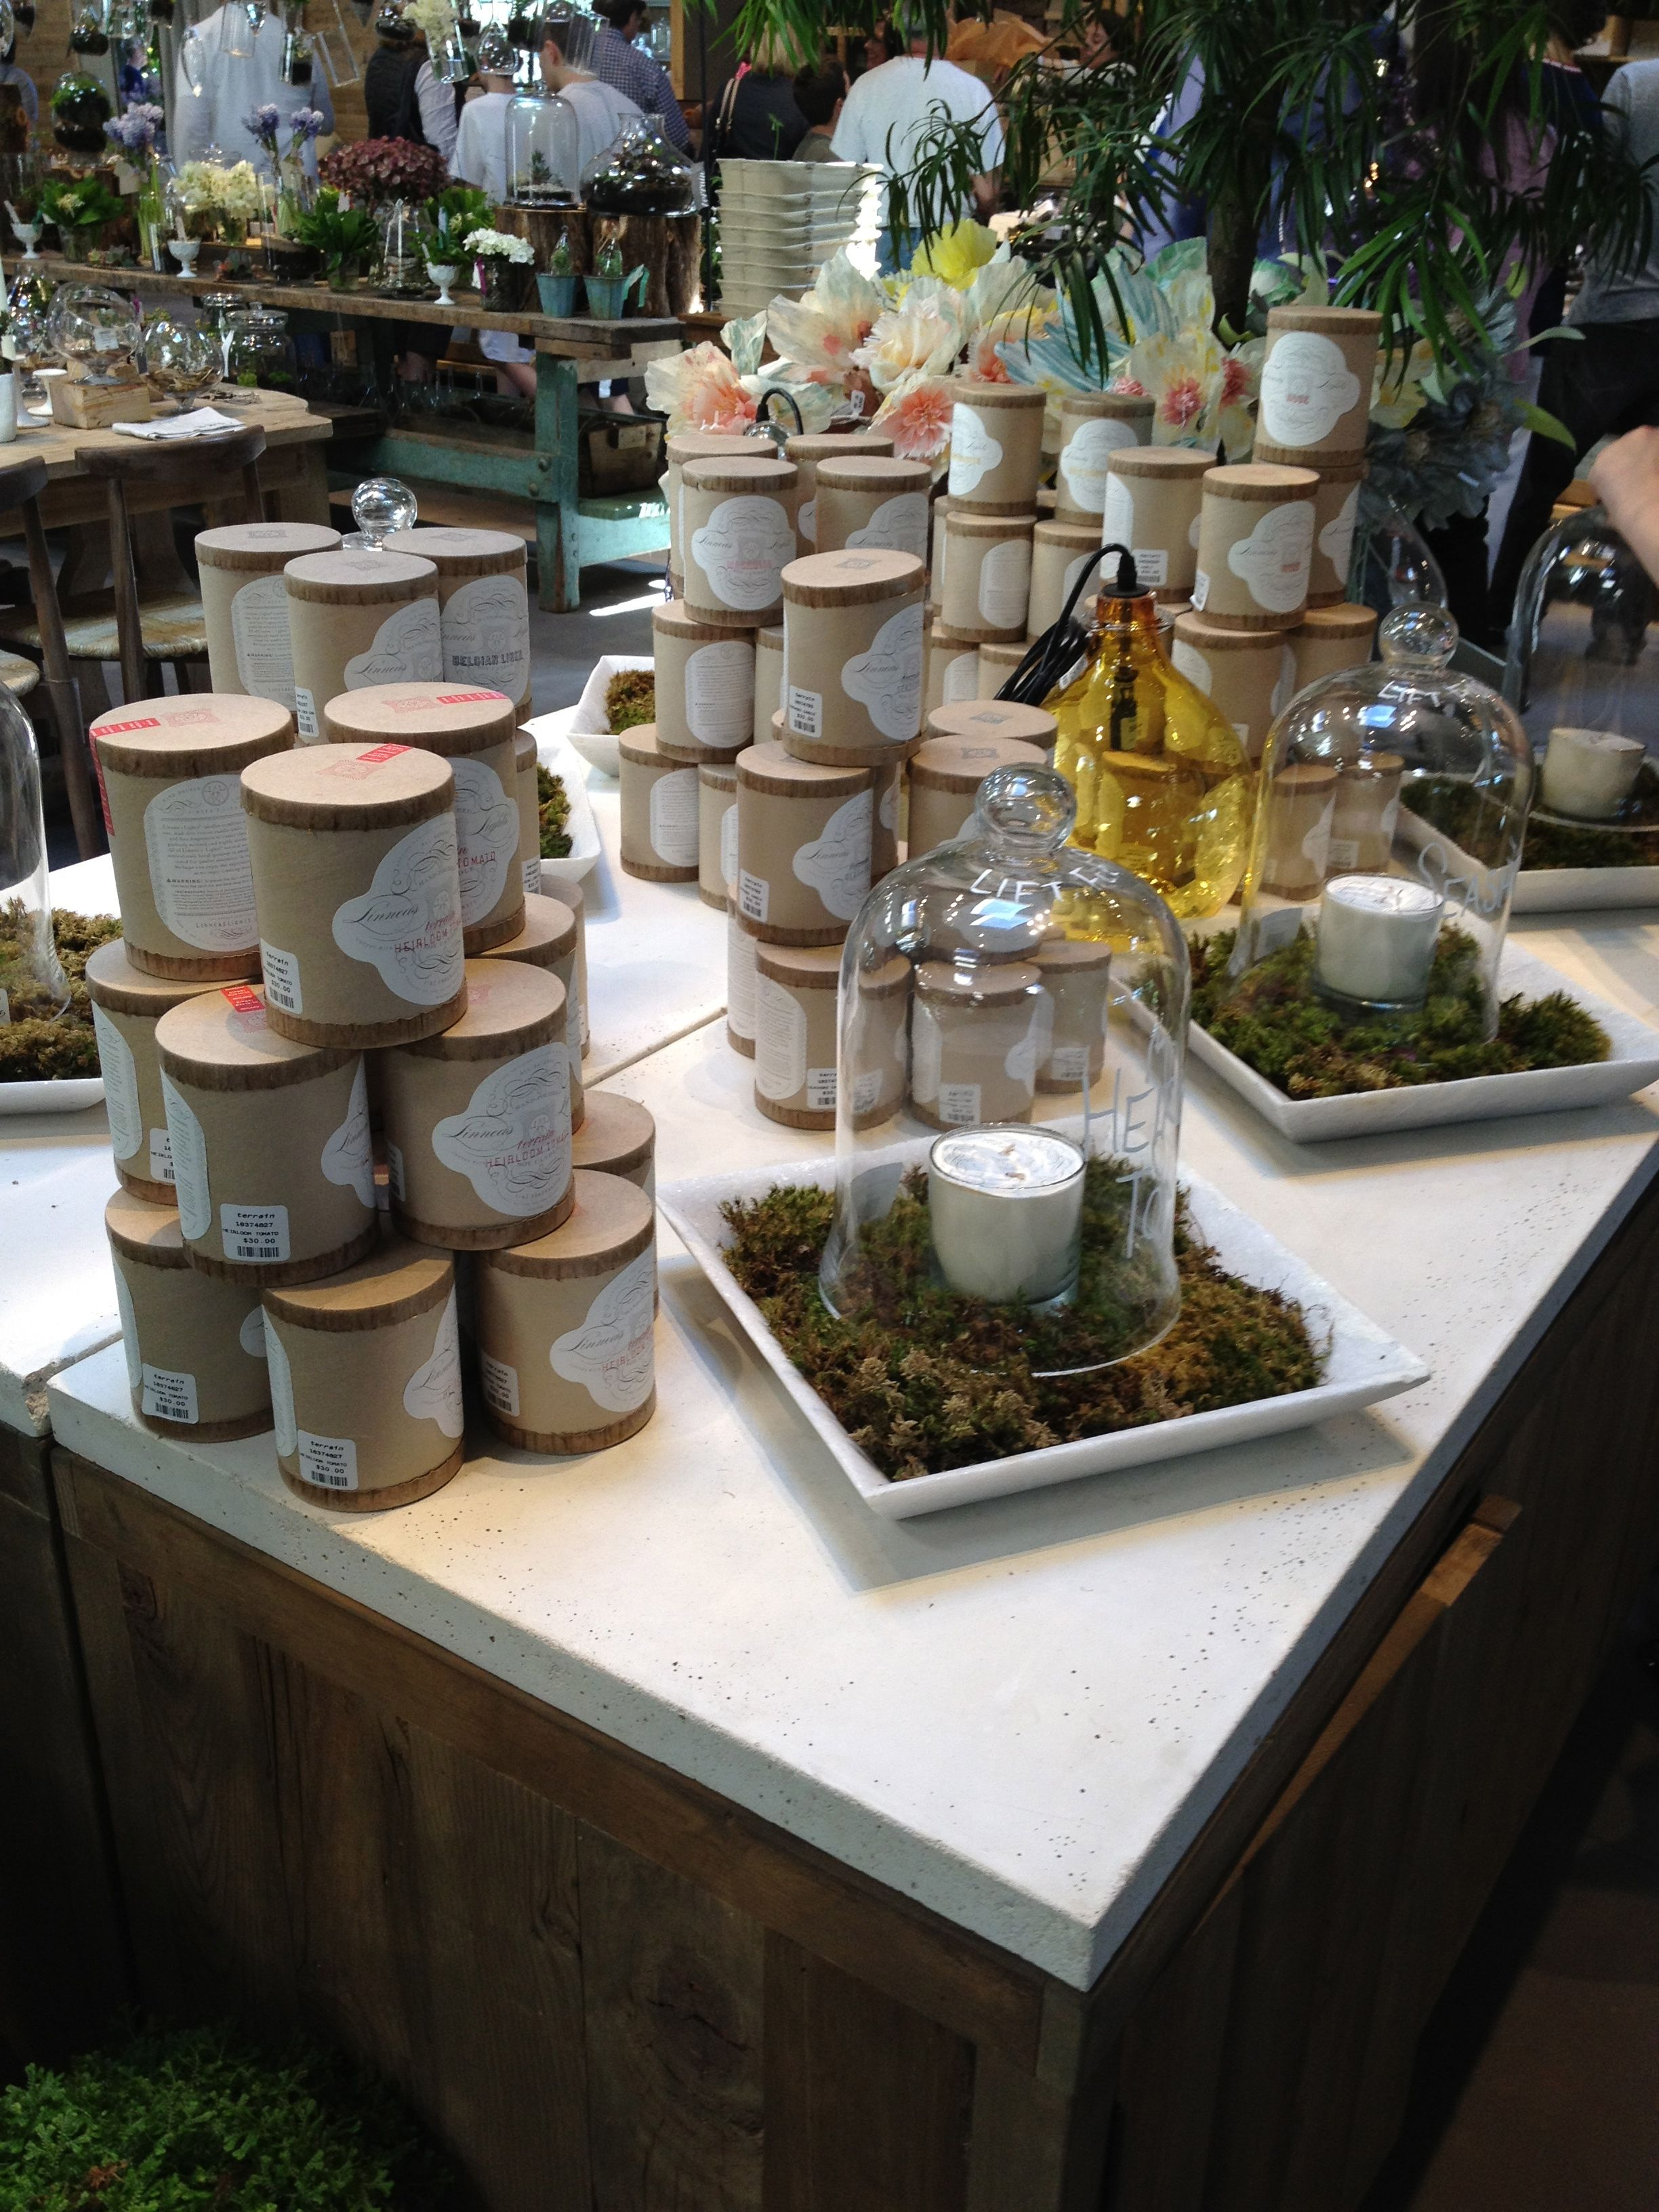 Terrain A Candle Or Two Candle Store Candle Store Display Candle Display Retail